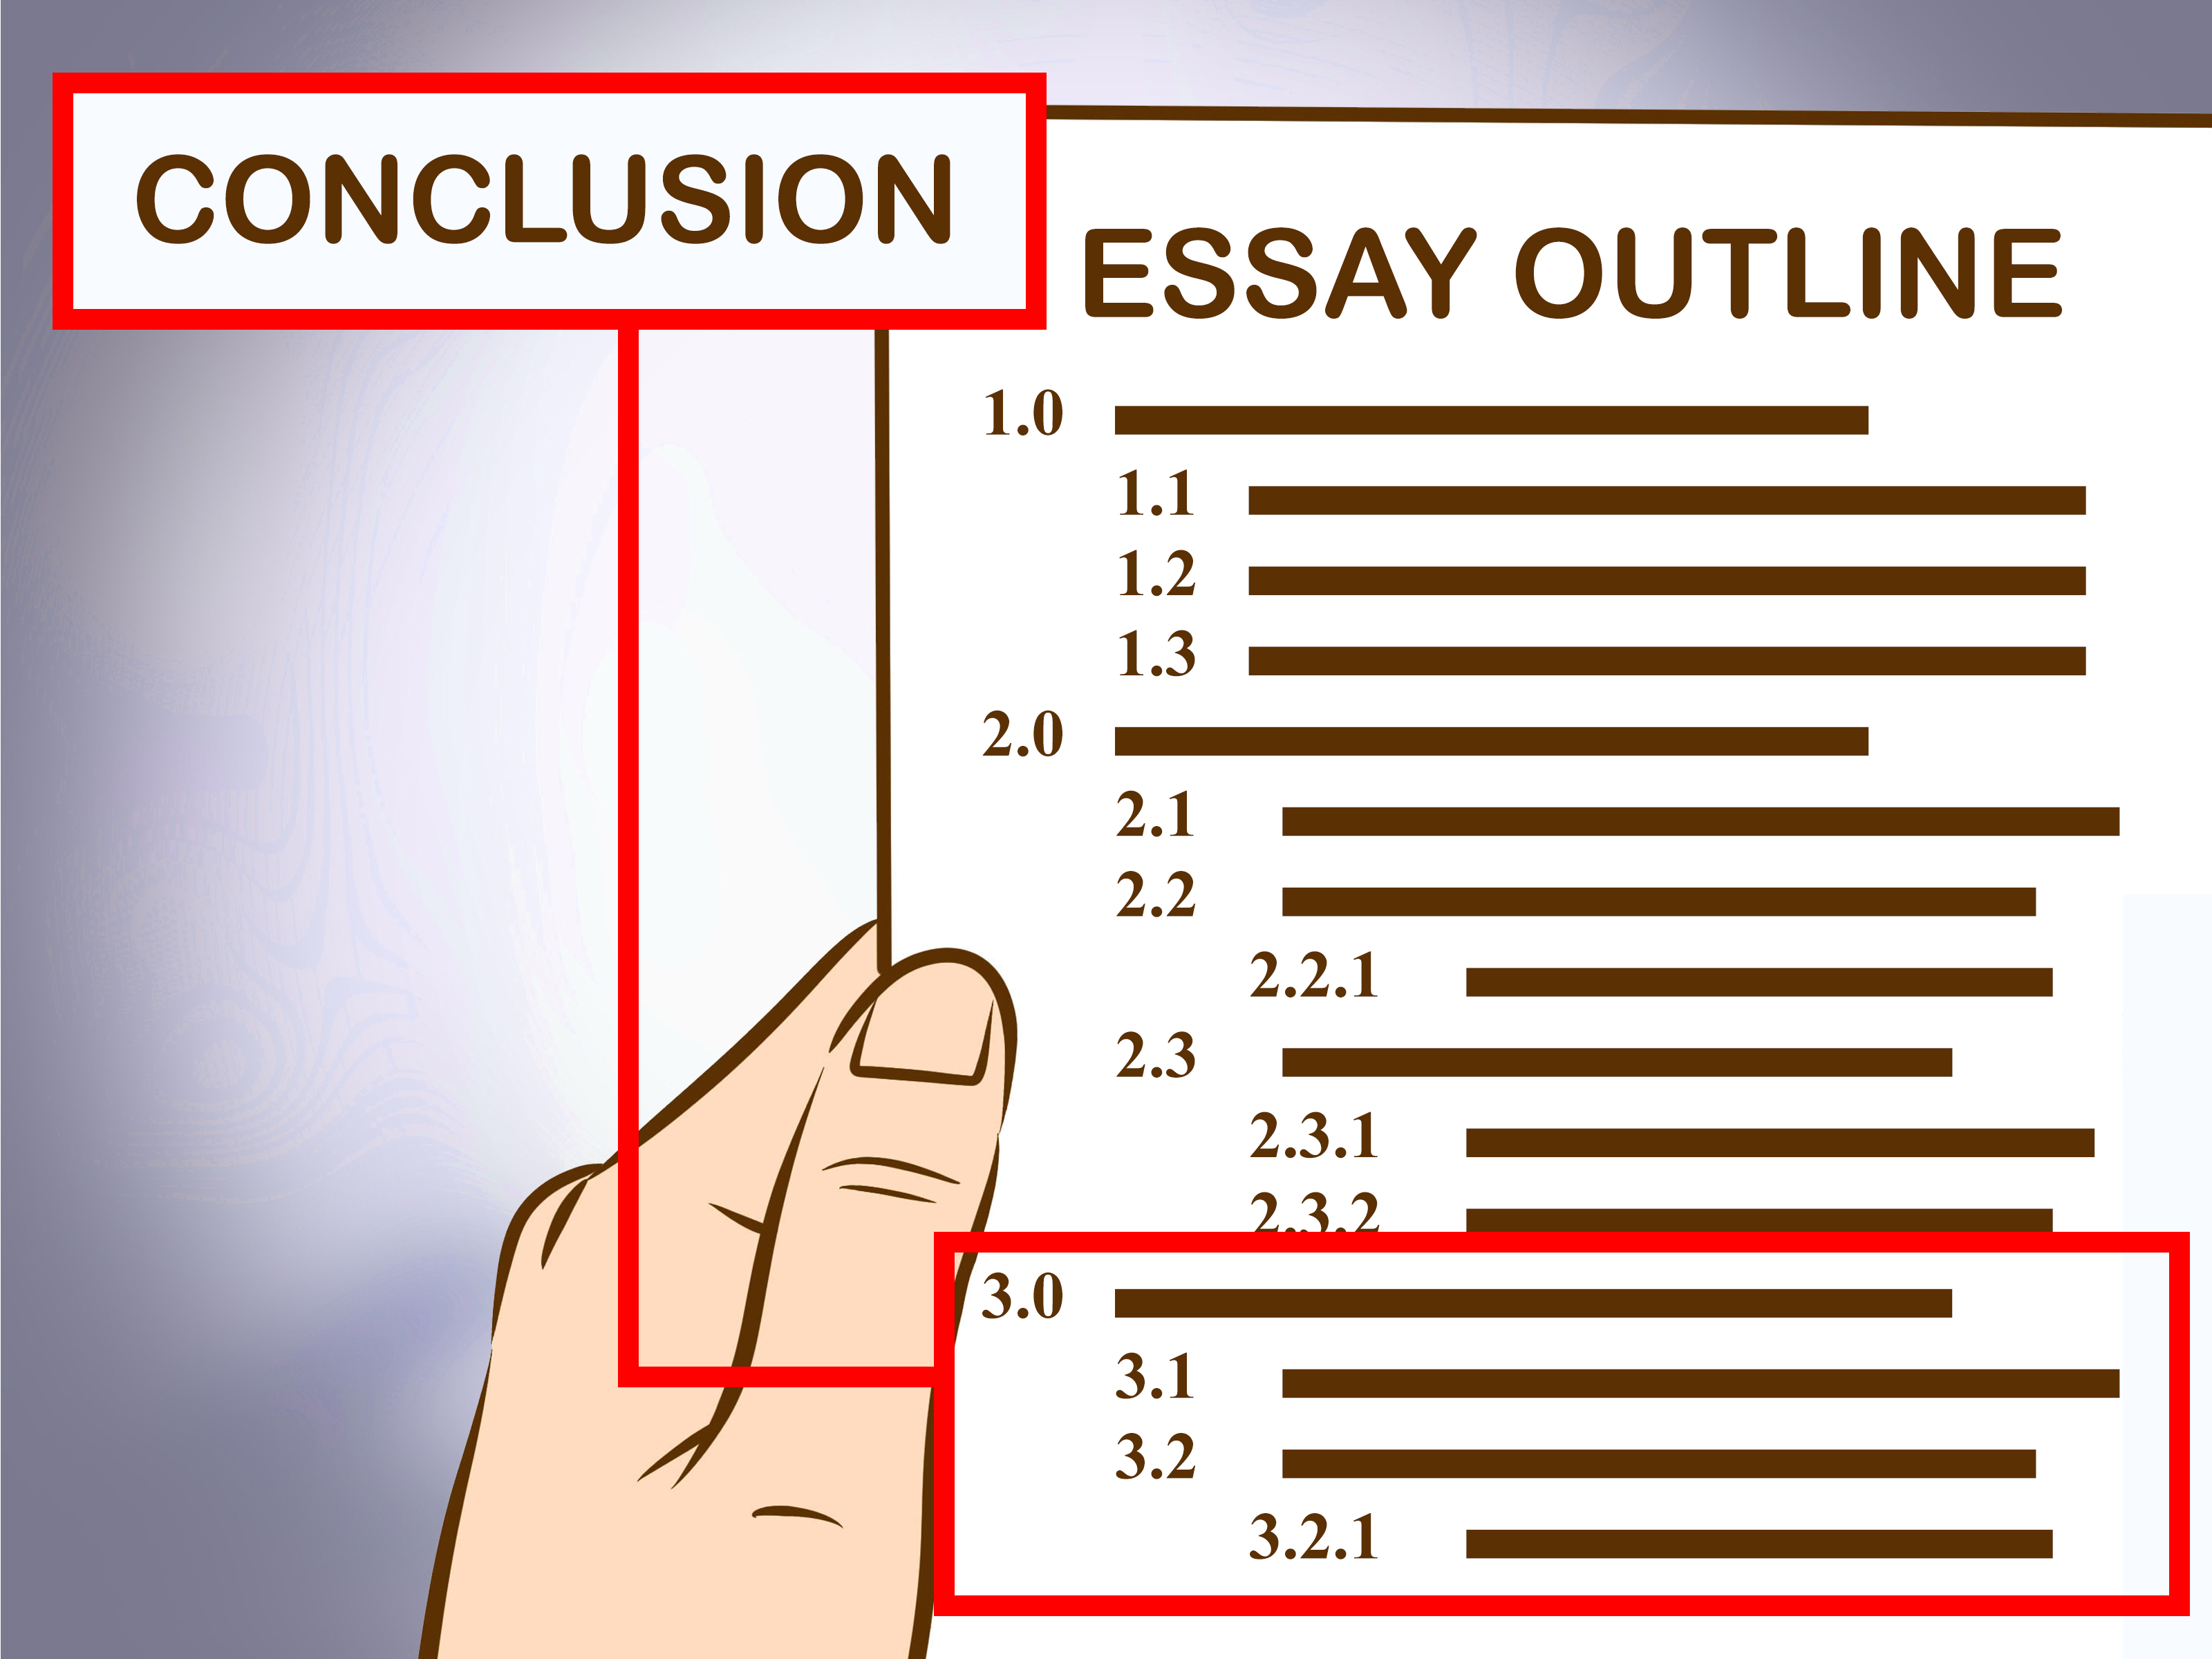 004 Write An Essay Outline Step Version Example How Excellent To For University 6th Grade